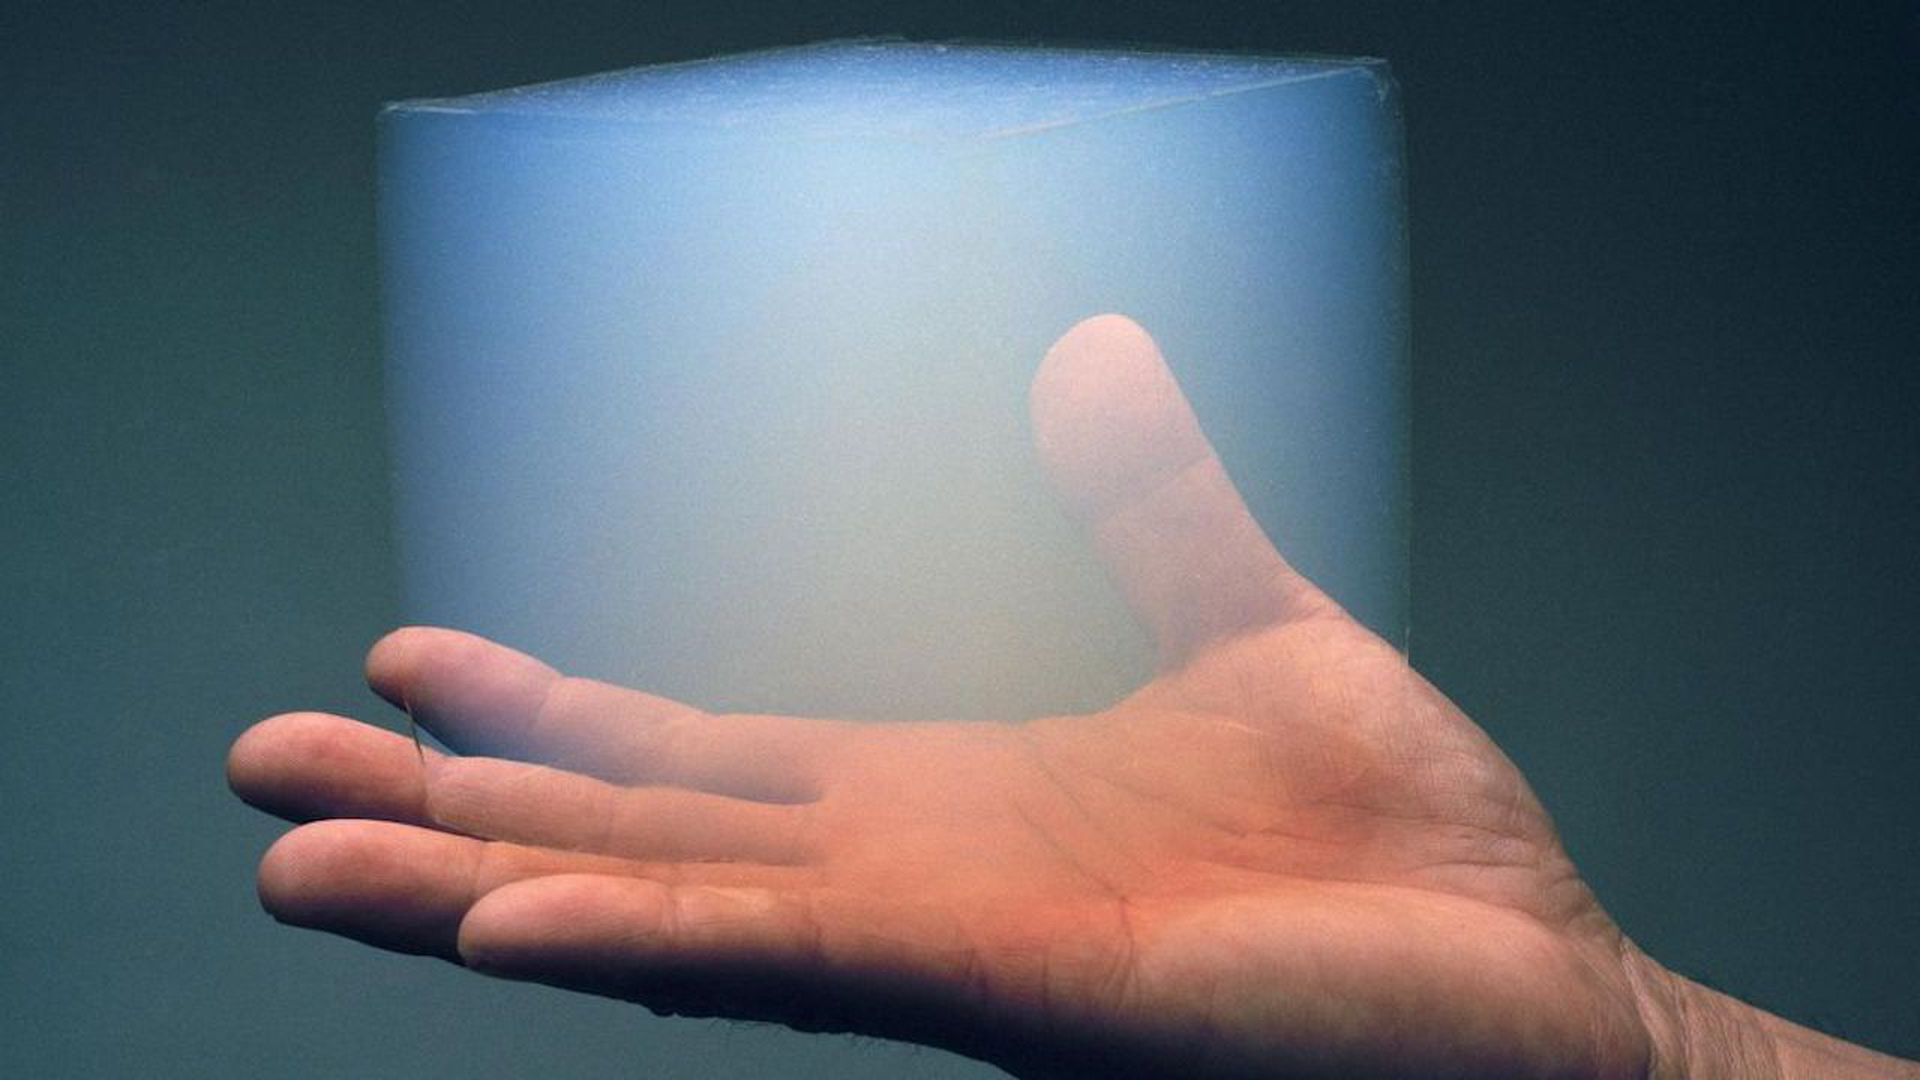 Aerogel that could make Mars inhabitable